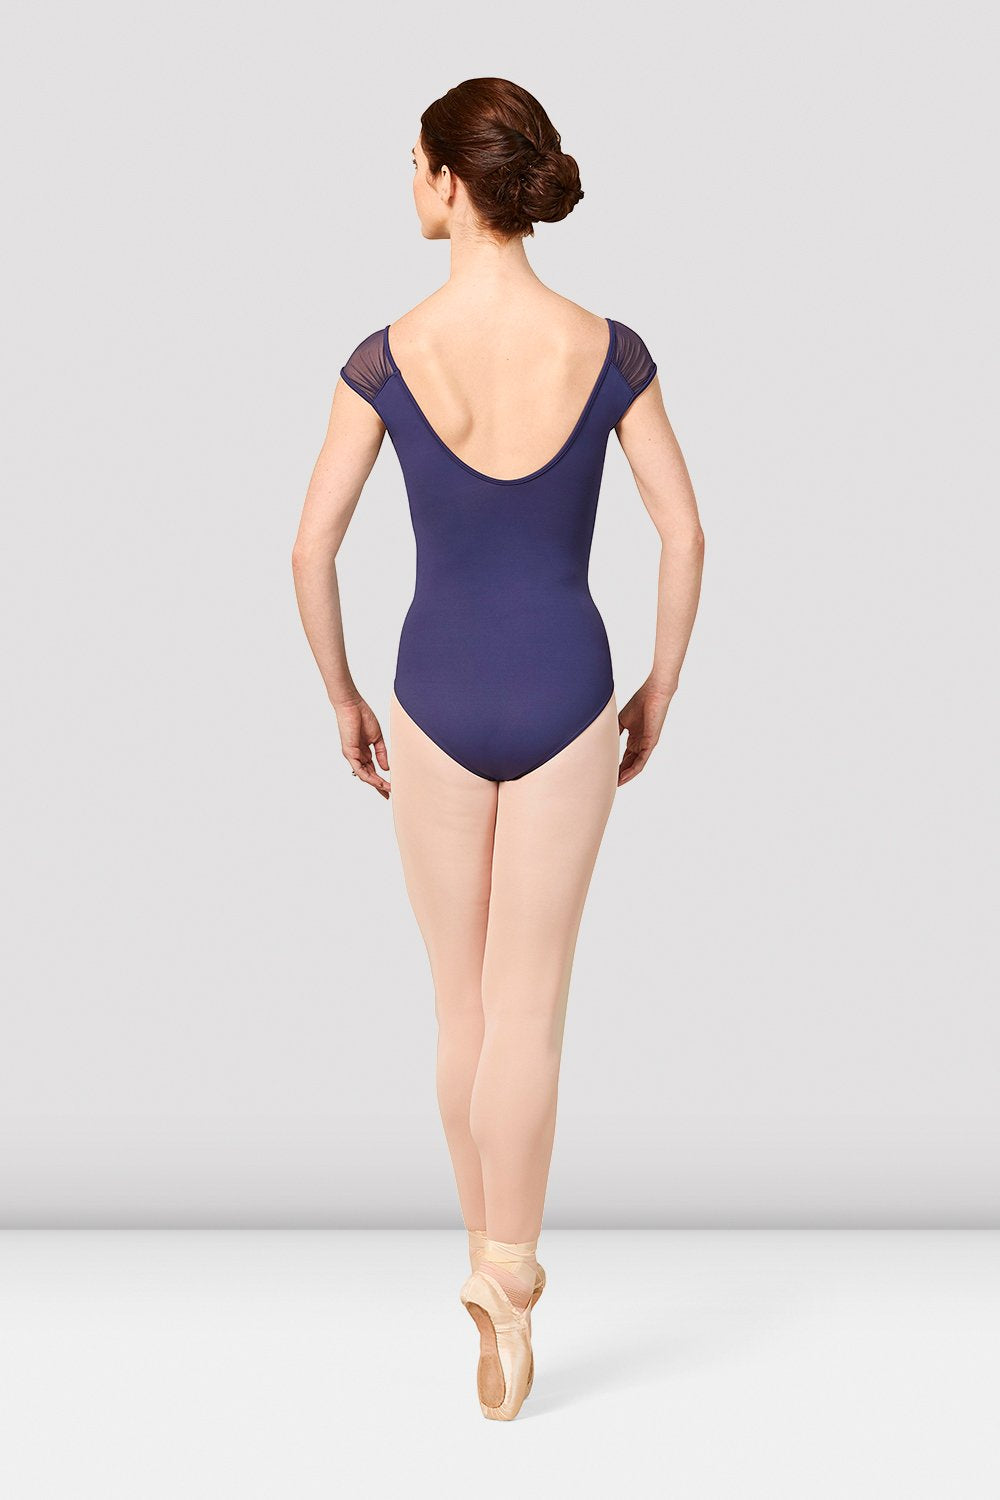 Ladies Mirella Vienna Cap Sleeve V-Neck Leotard - BLOCH US